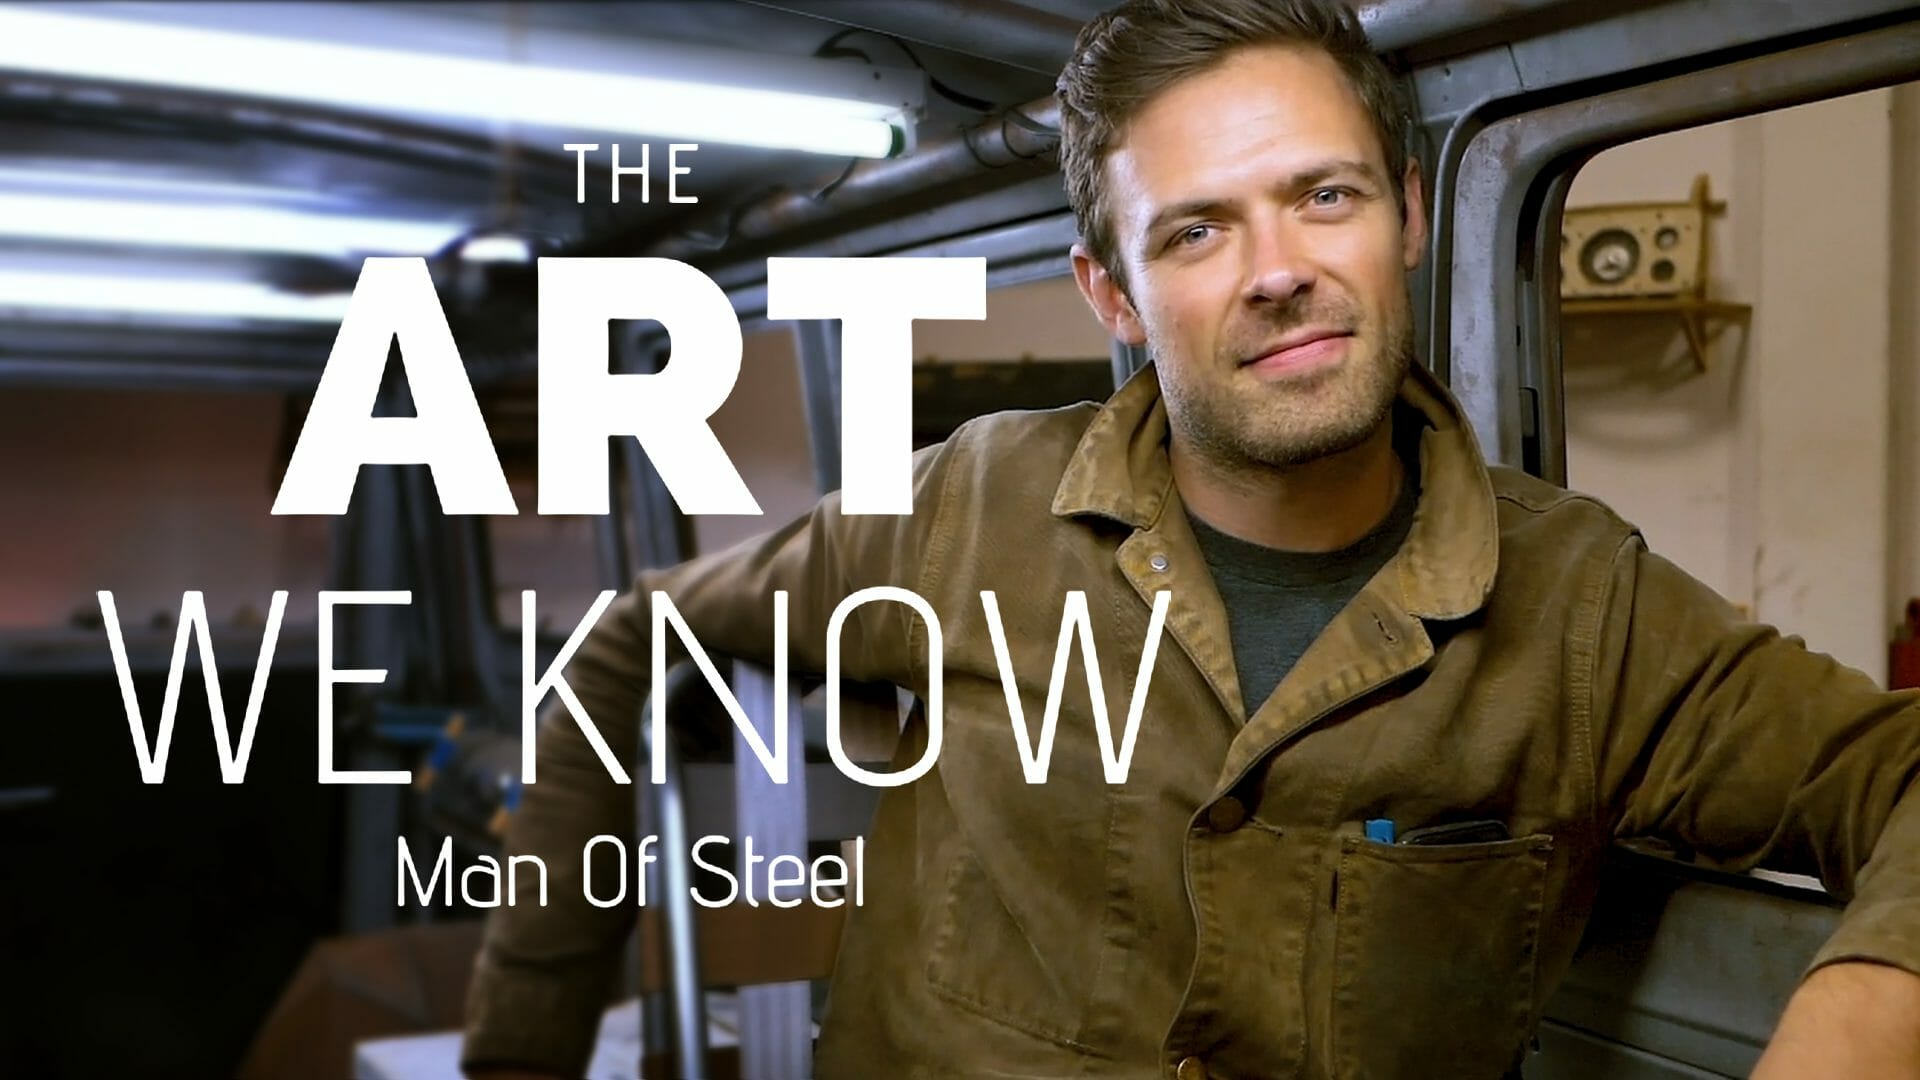 Documentary: The Art We Know | Steel in Motion